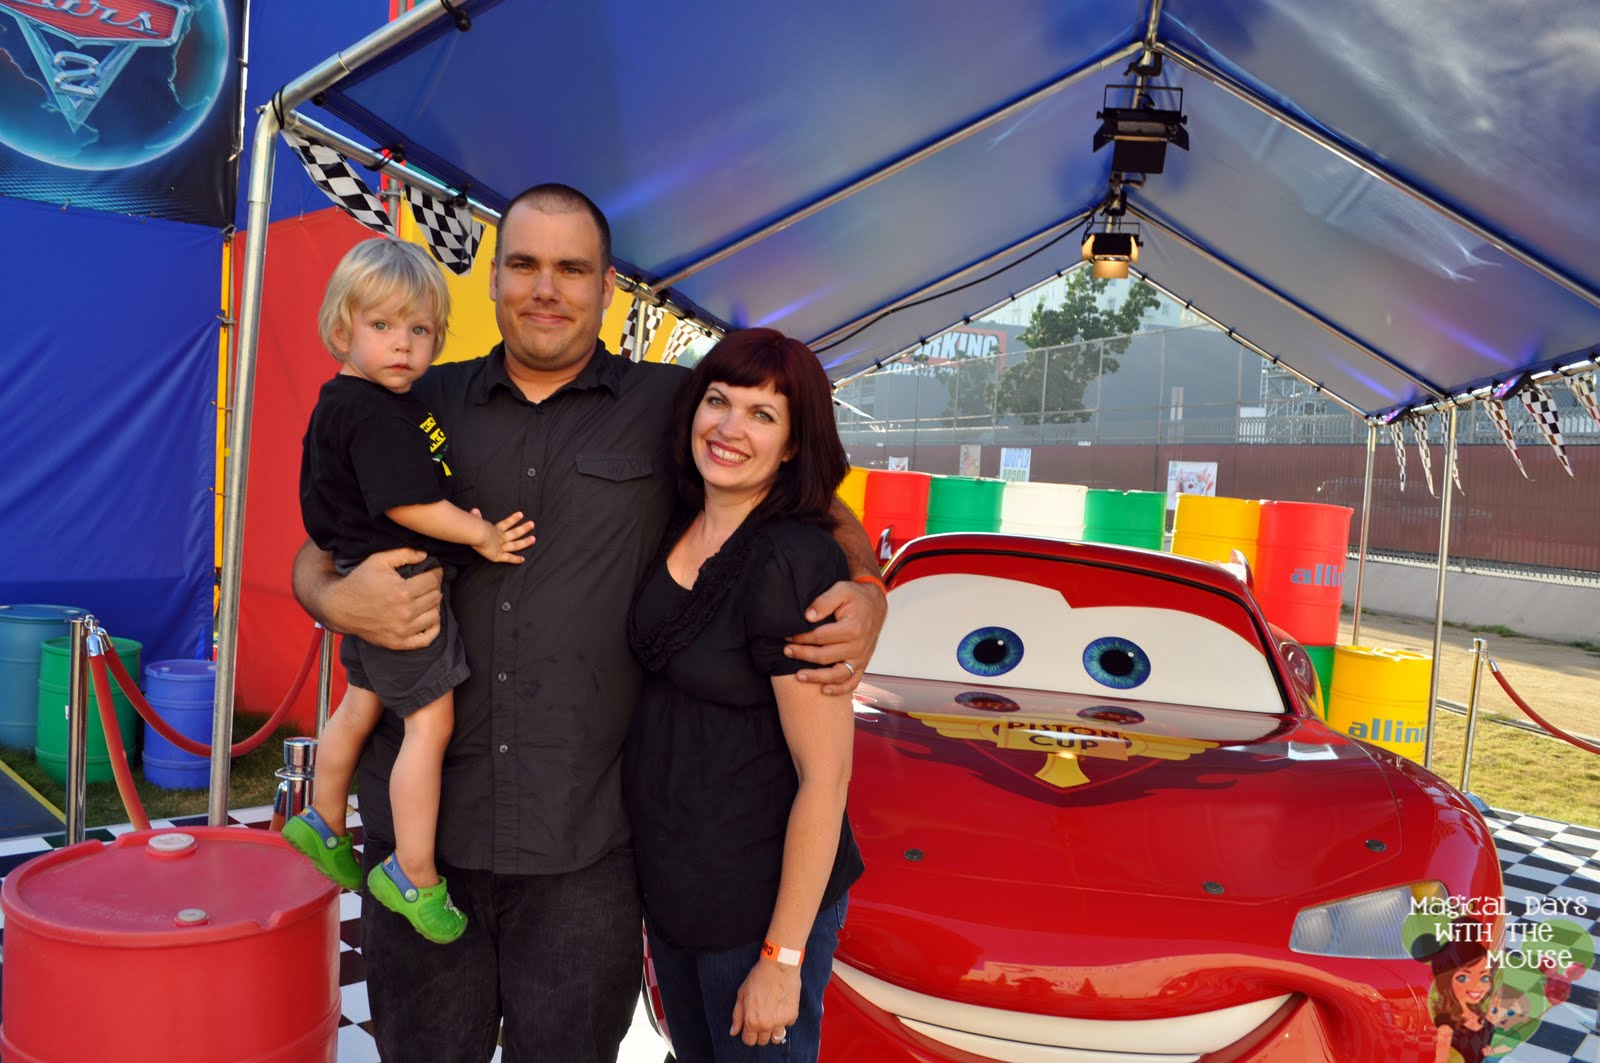 Lighting mcqueen will be the first car to greet you when entering the cars 2 world grand prix attraction my tip for you is to wait and get your picture